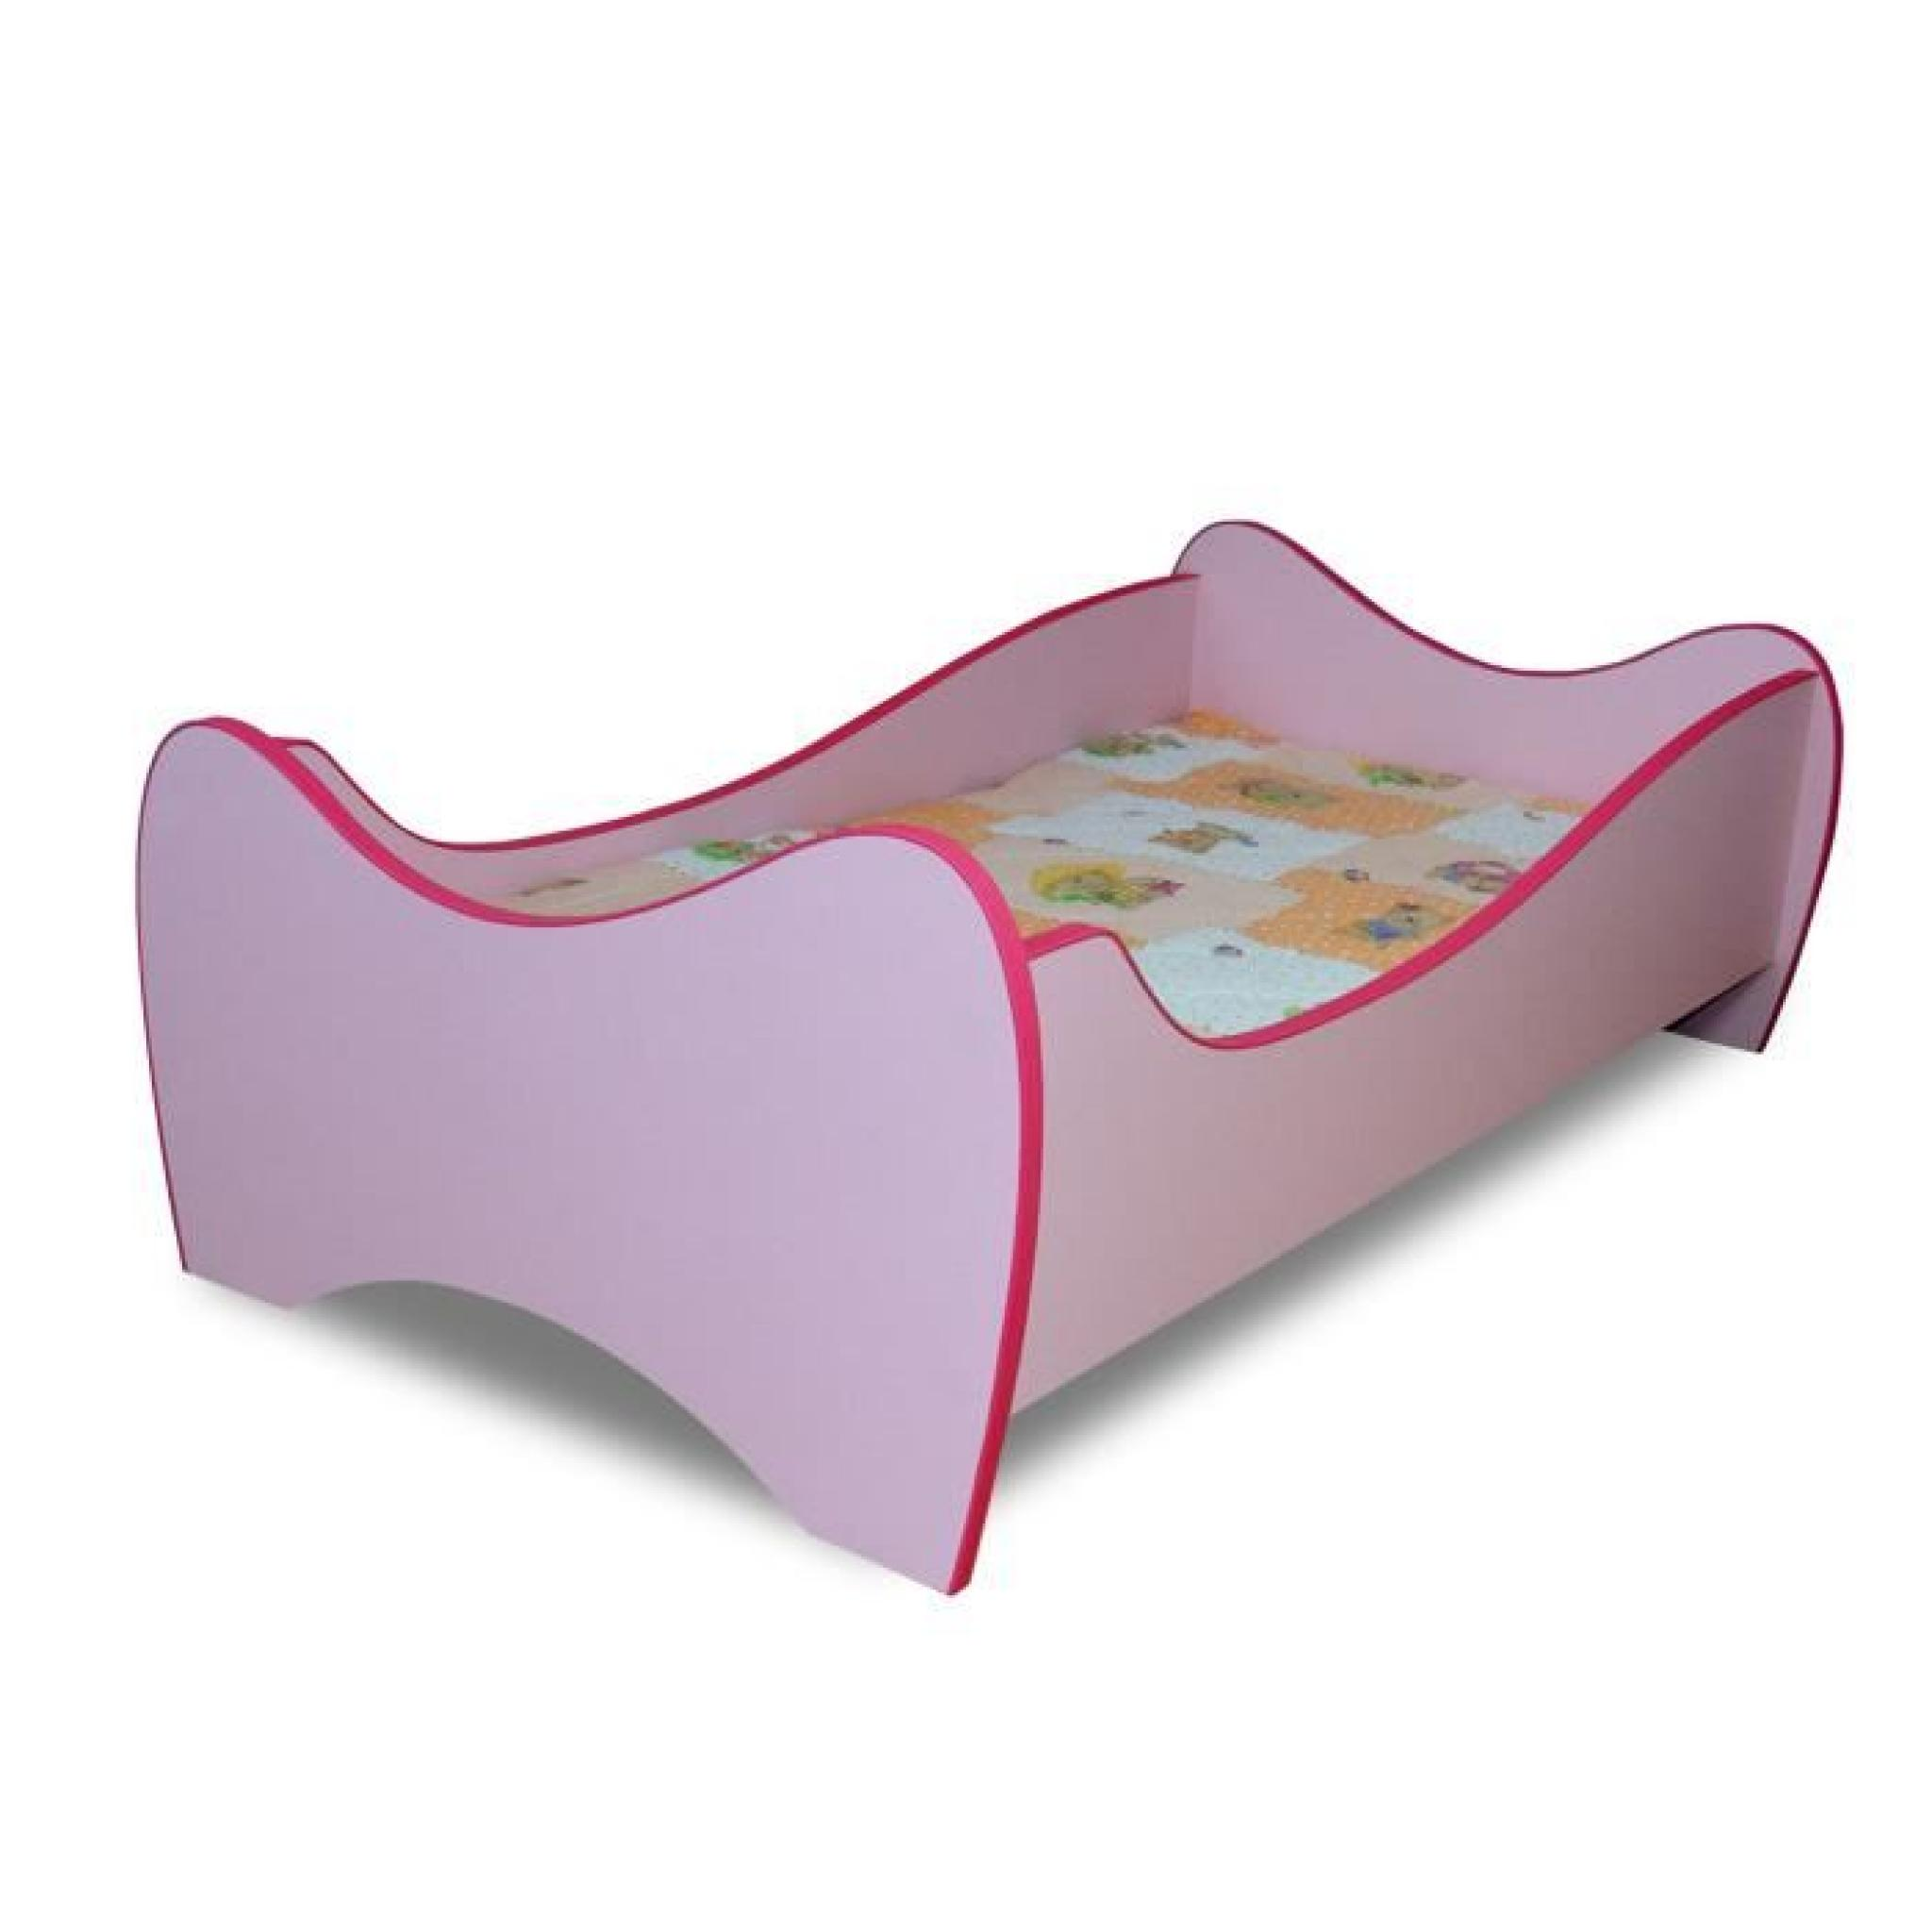 lit enfant rose sommier matelas 140x70 cm achat vente. Black Bedroom Furniture Sets. Home Design Ideas